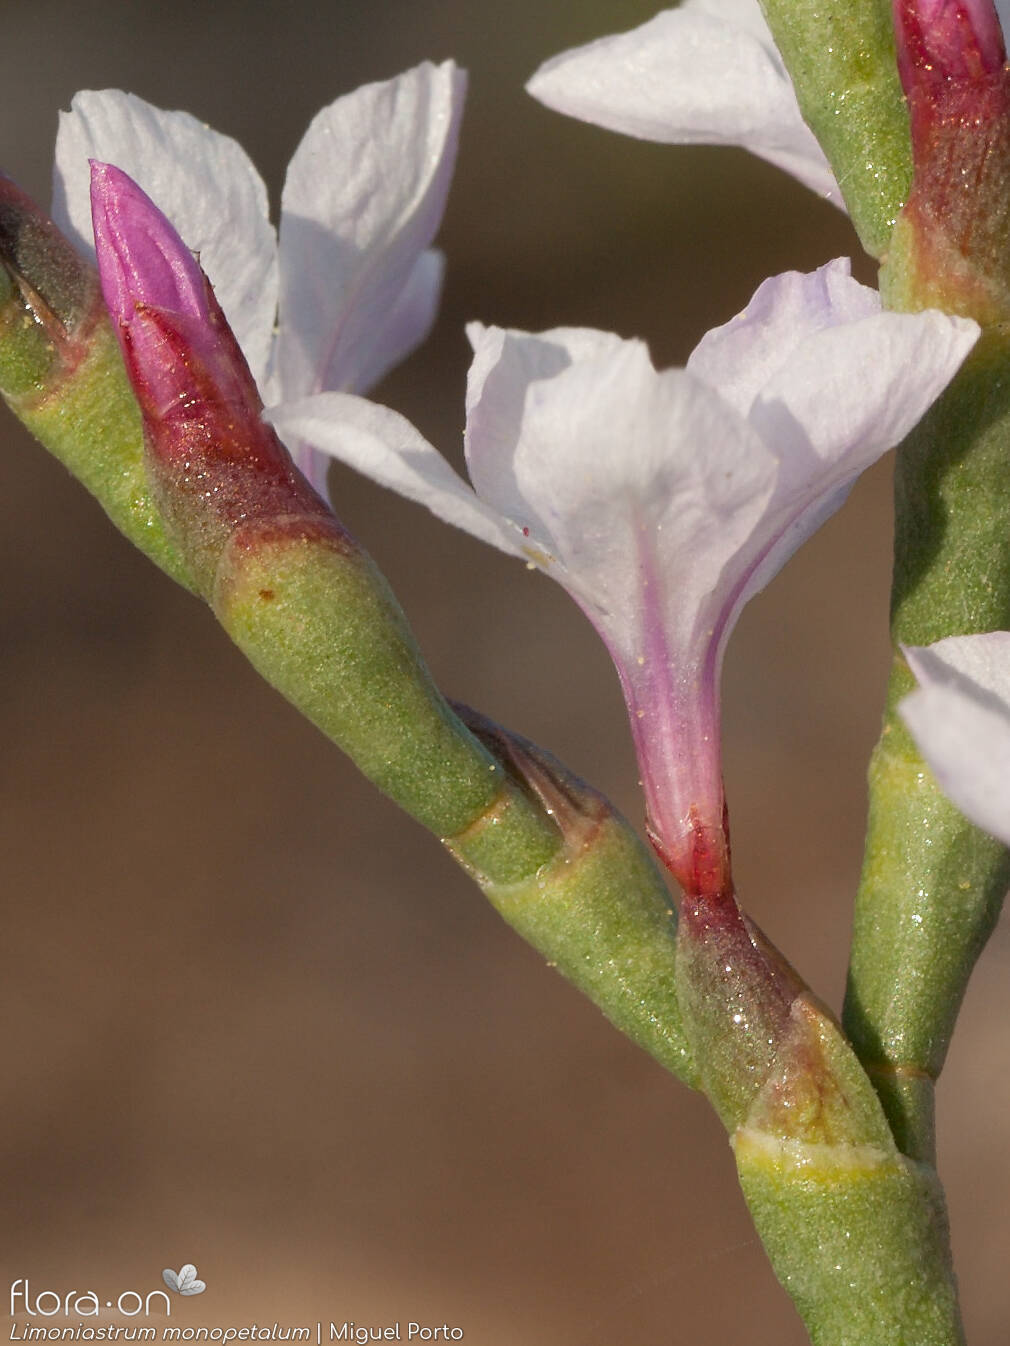 Limoniastrum monopetalum - Flor (close-up) | Miguel Porto; CC BY-NC 4.0